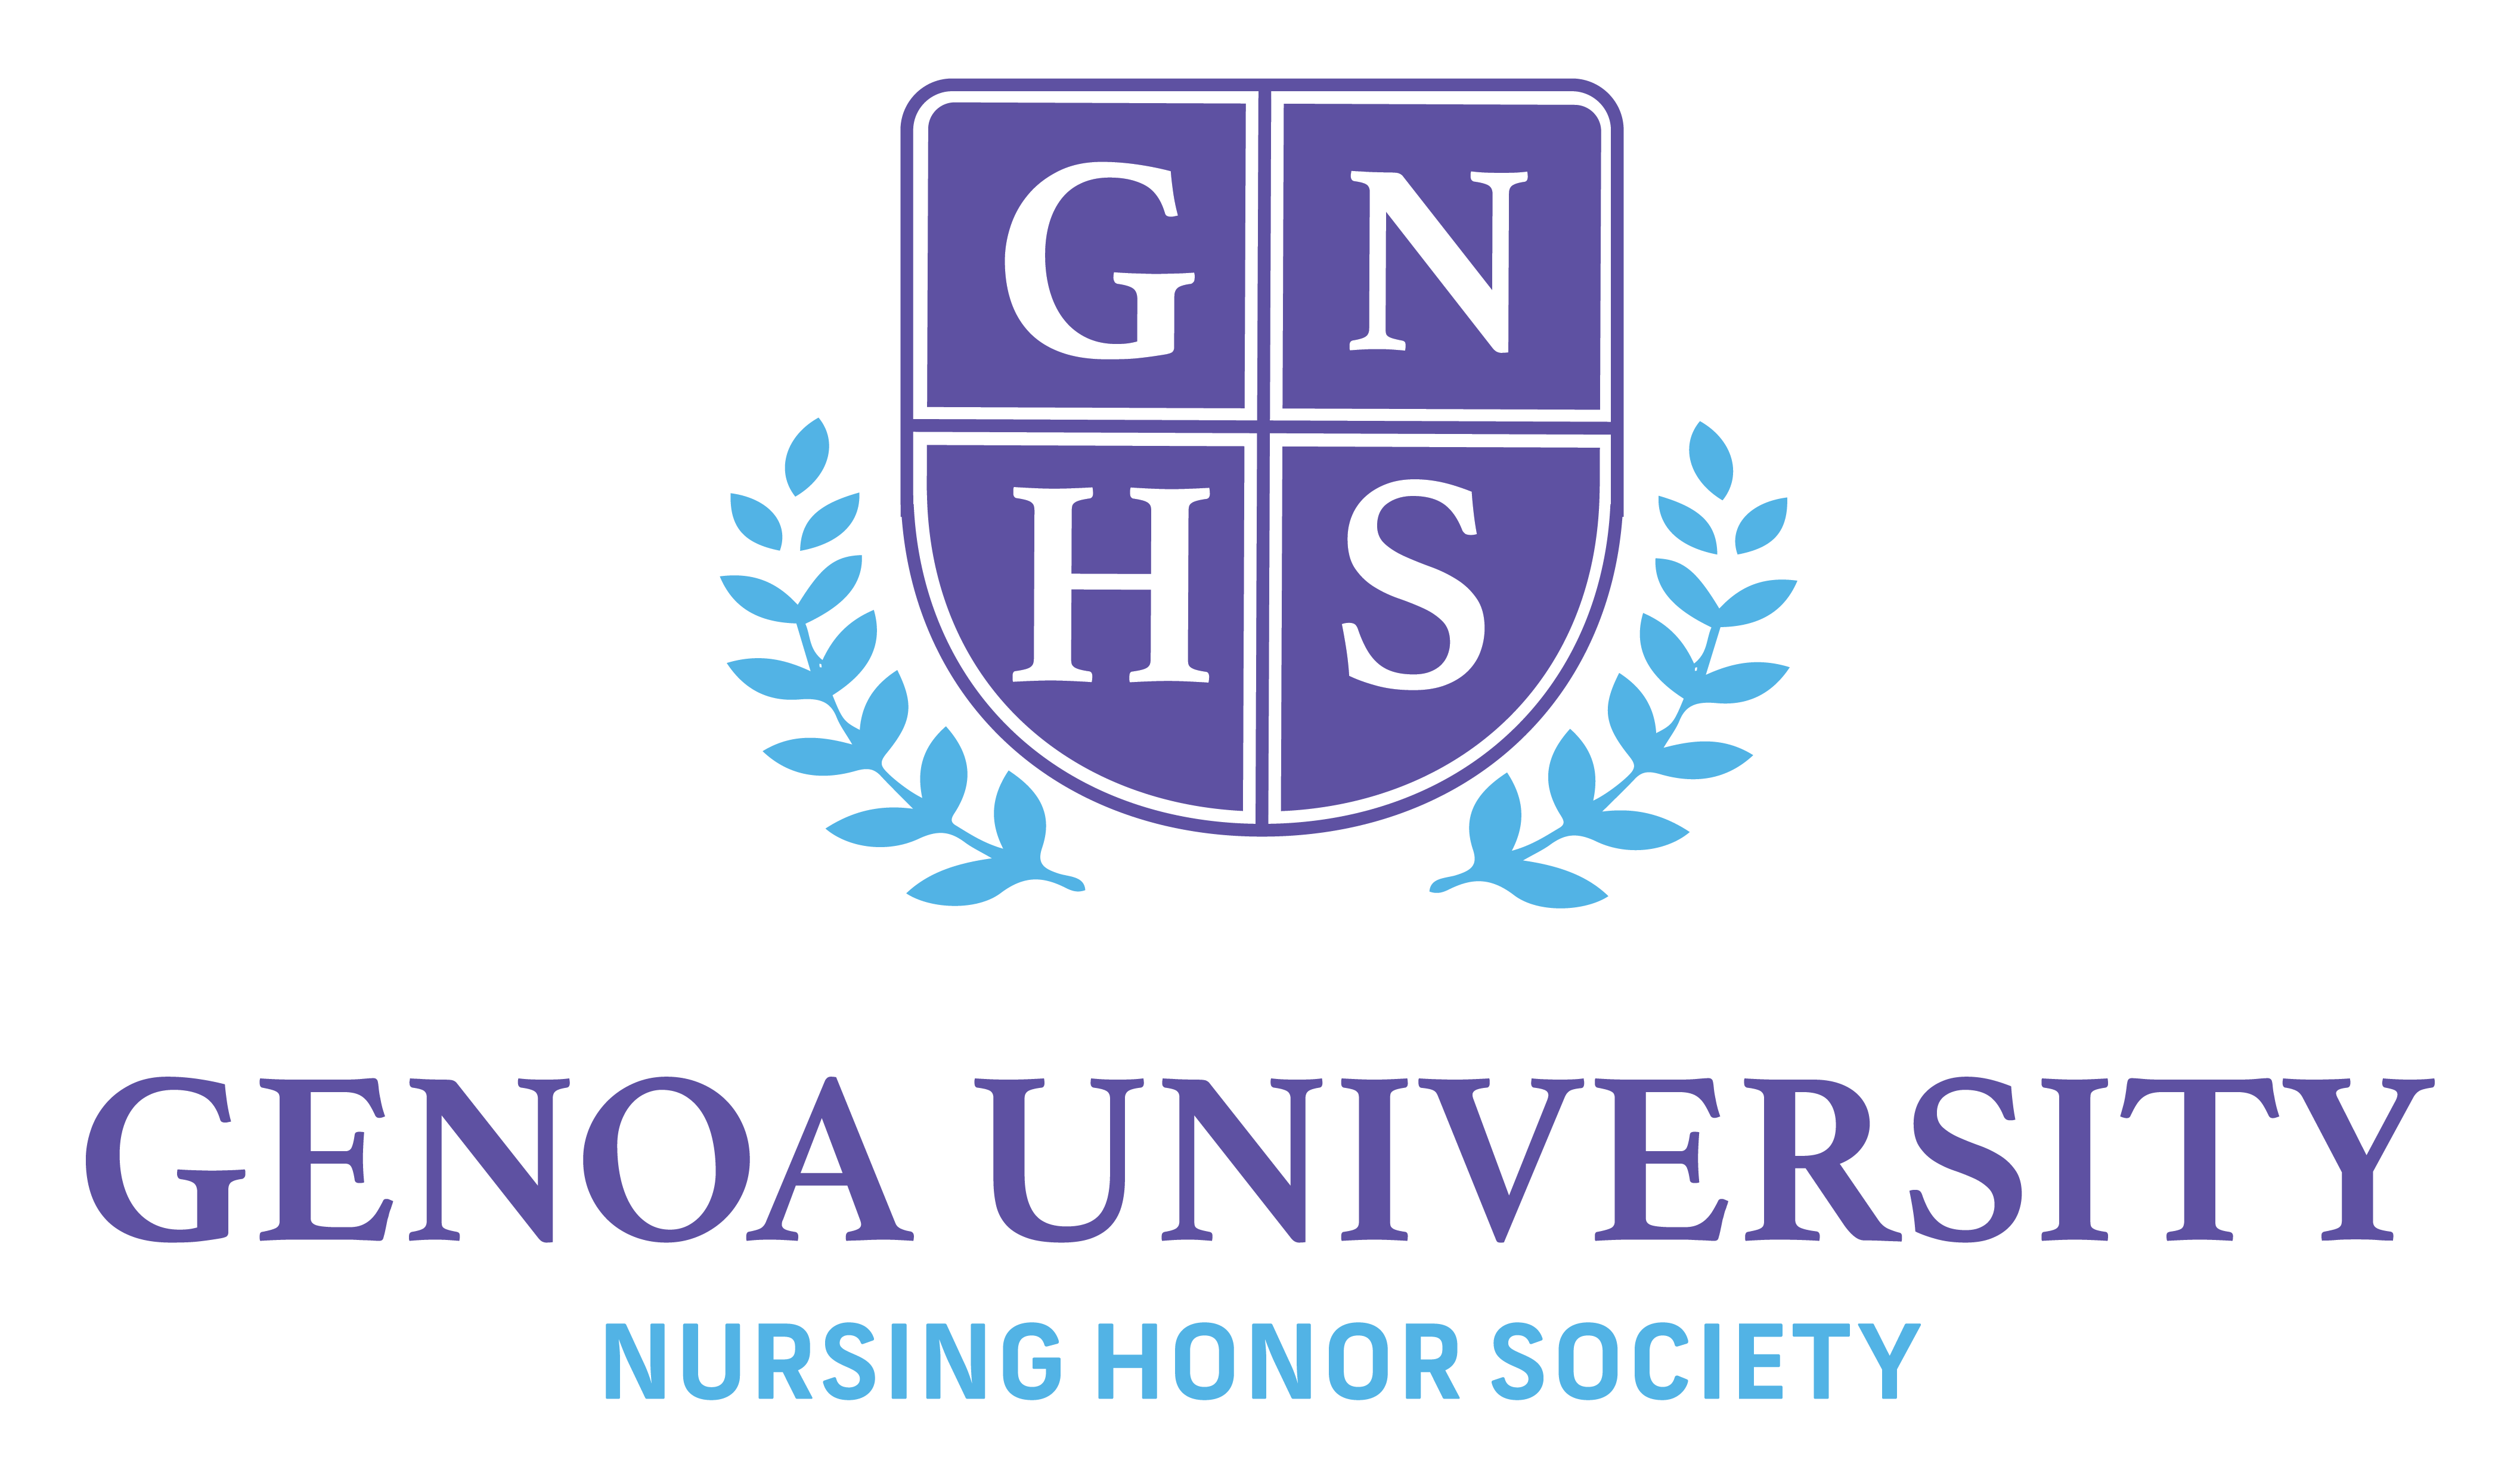 Genoa University Nursing Honor Society